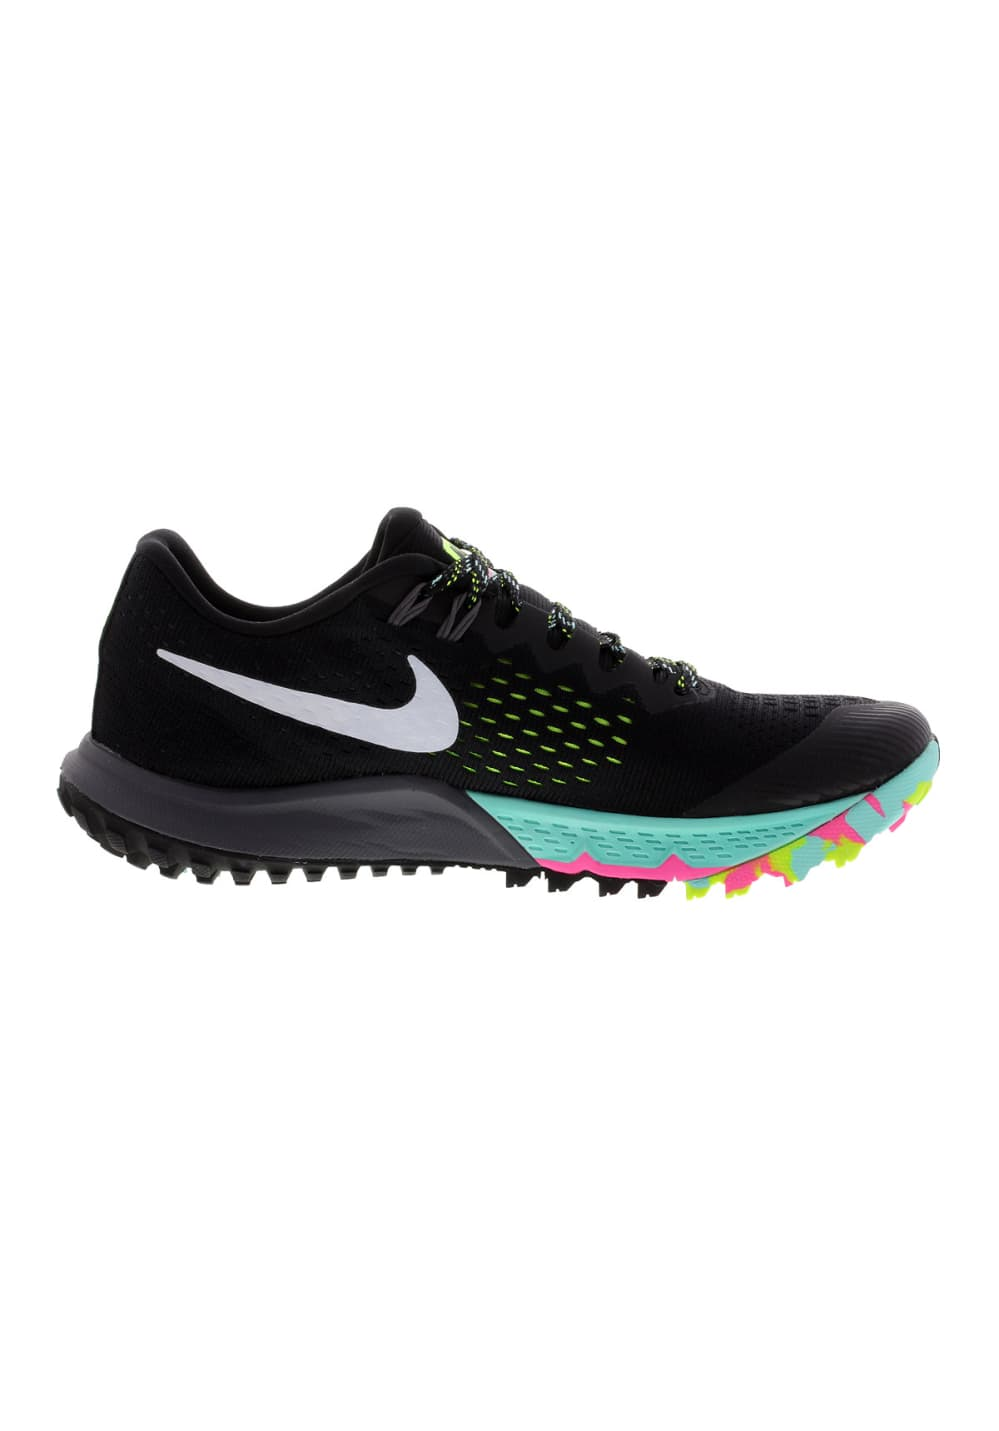 outlet store 63aa1 a705c Next. -60%. Nike. Air Zoom ...